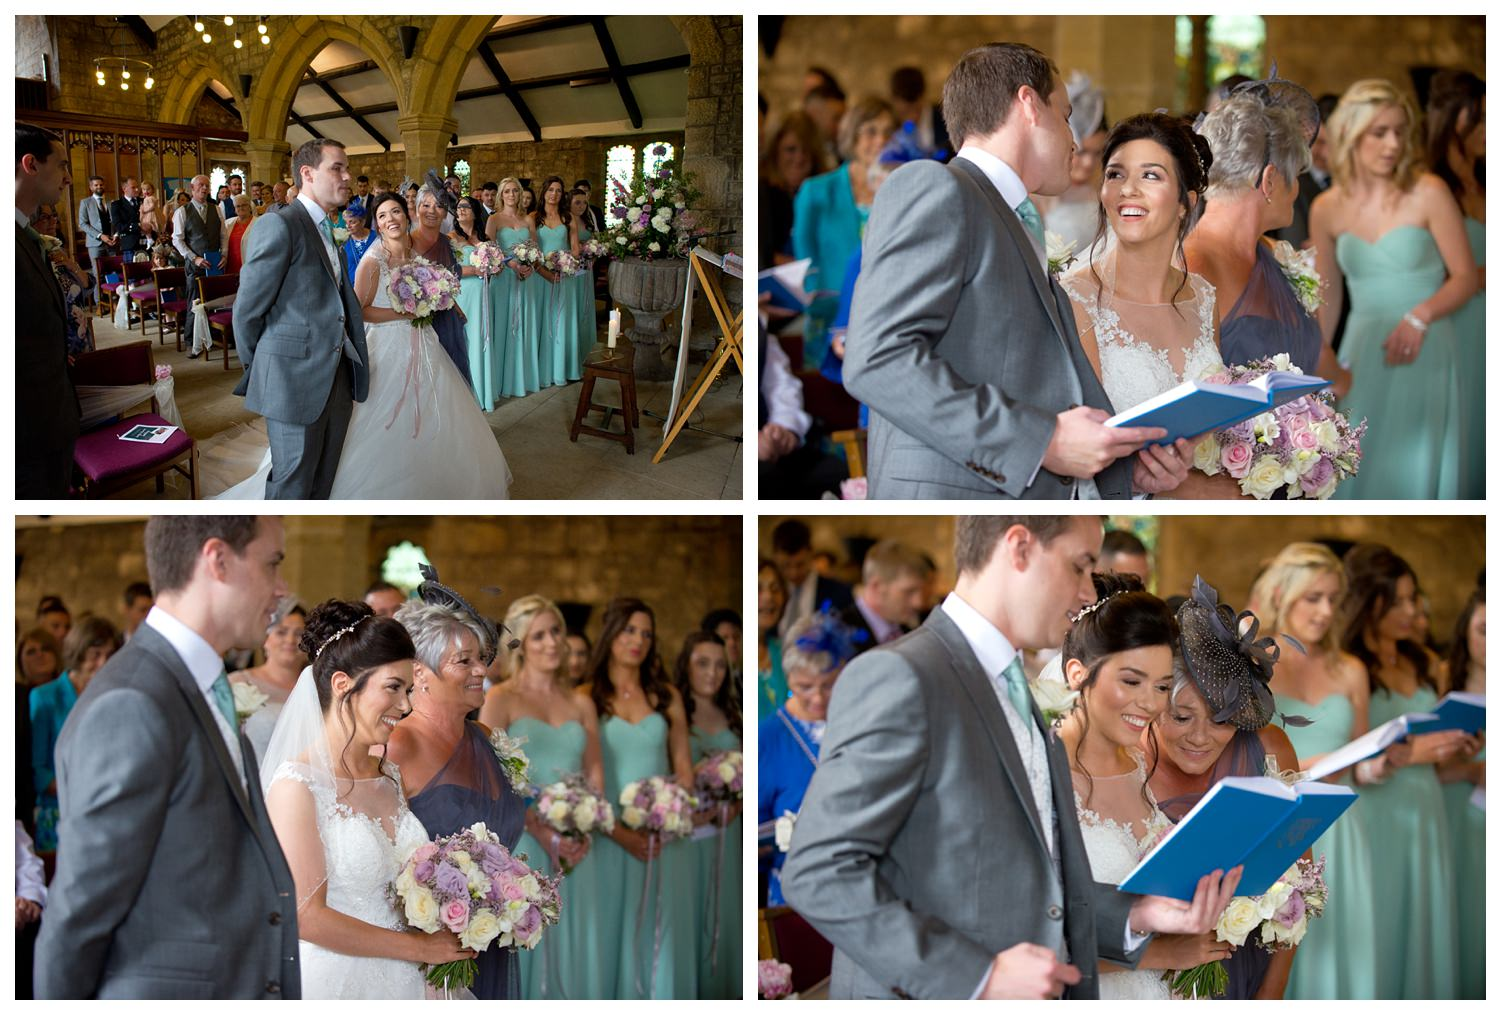 Bagden-Hall-Wedding-Photography_0026